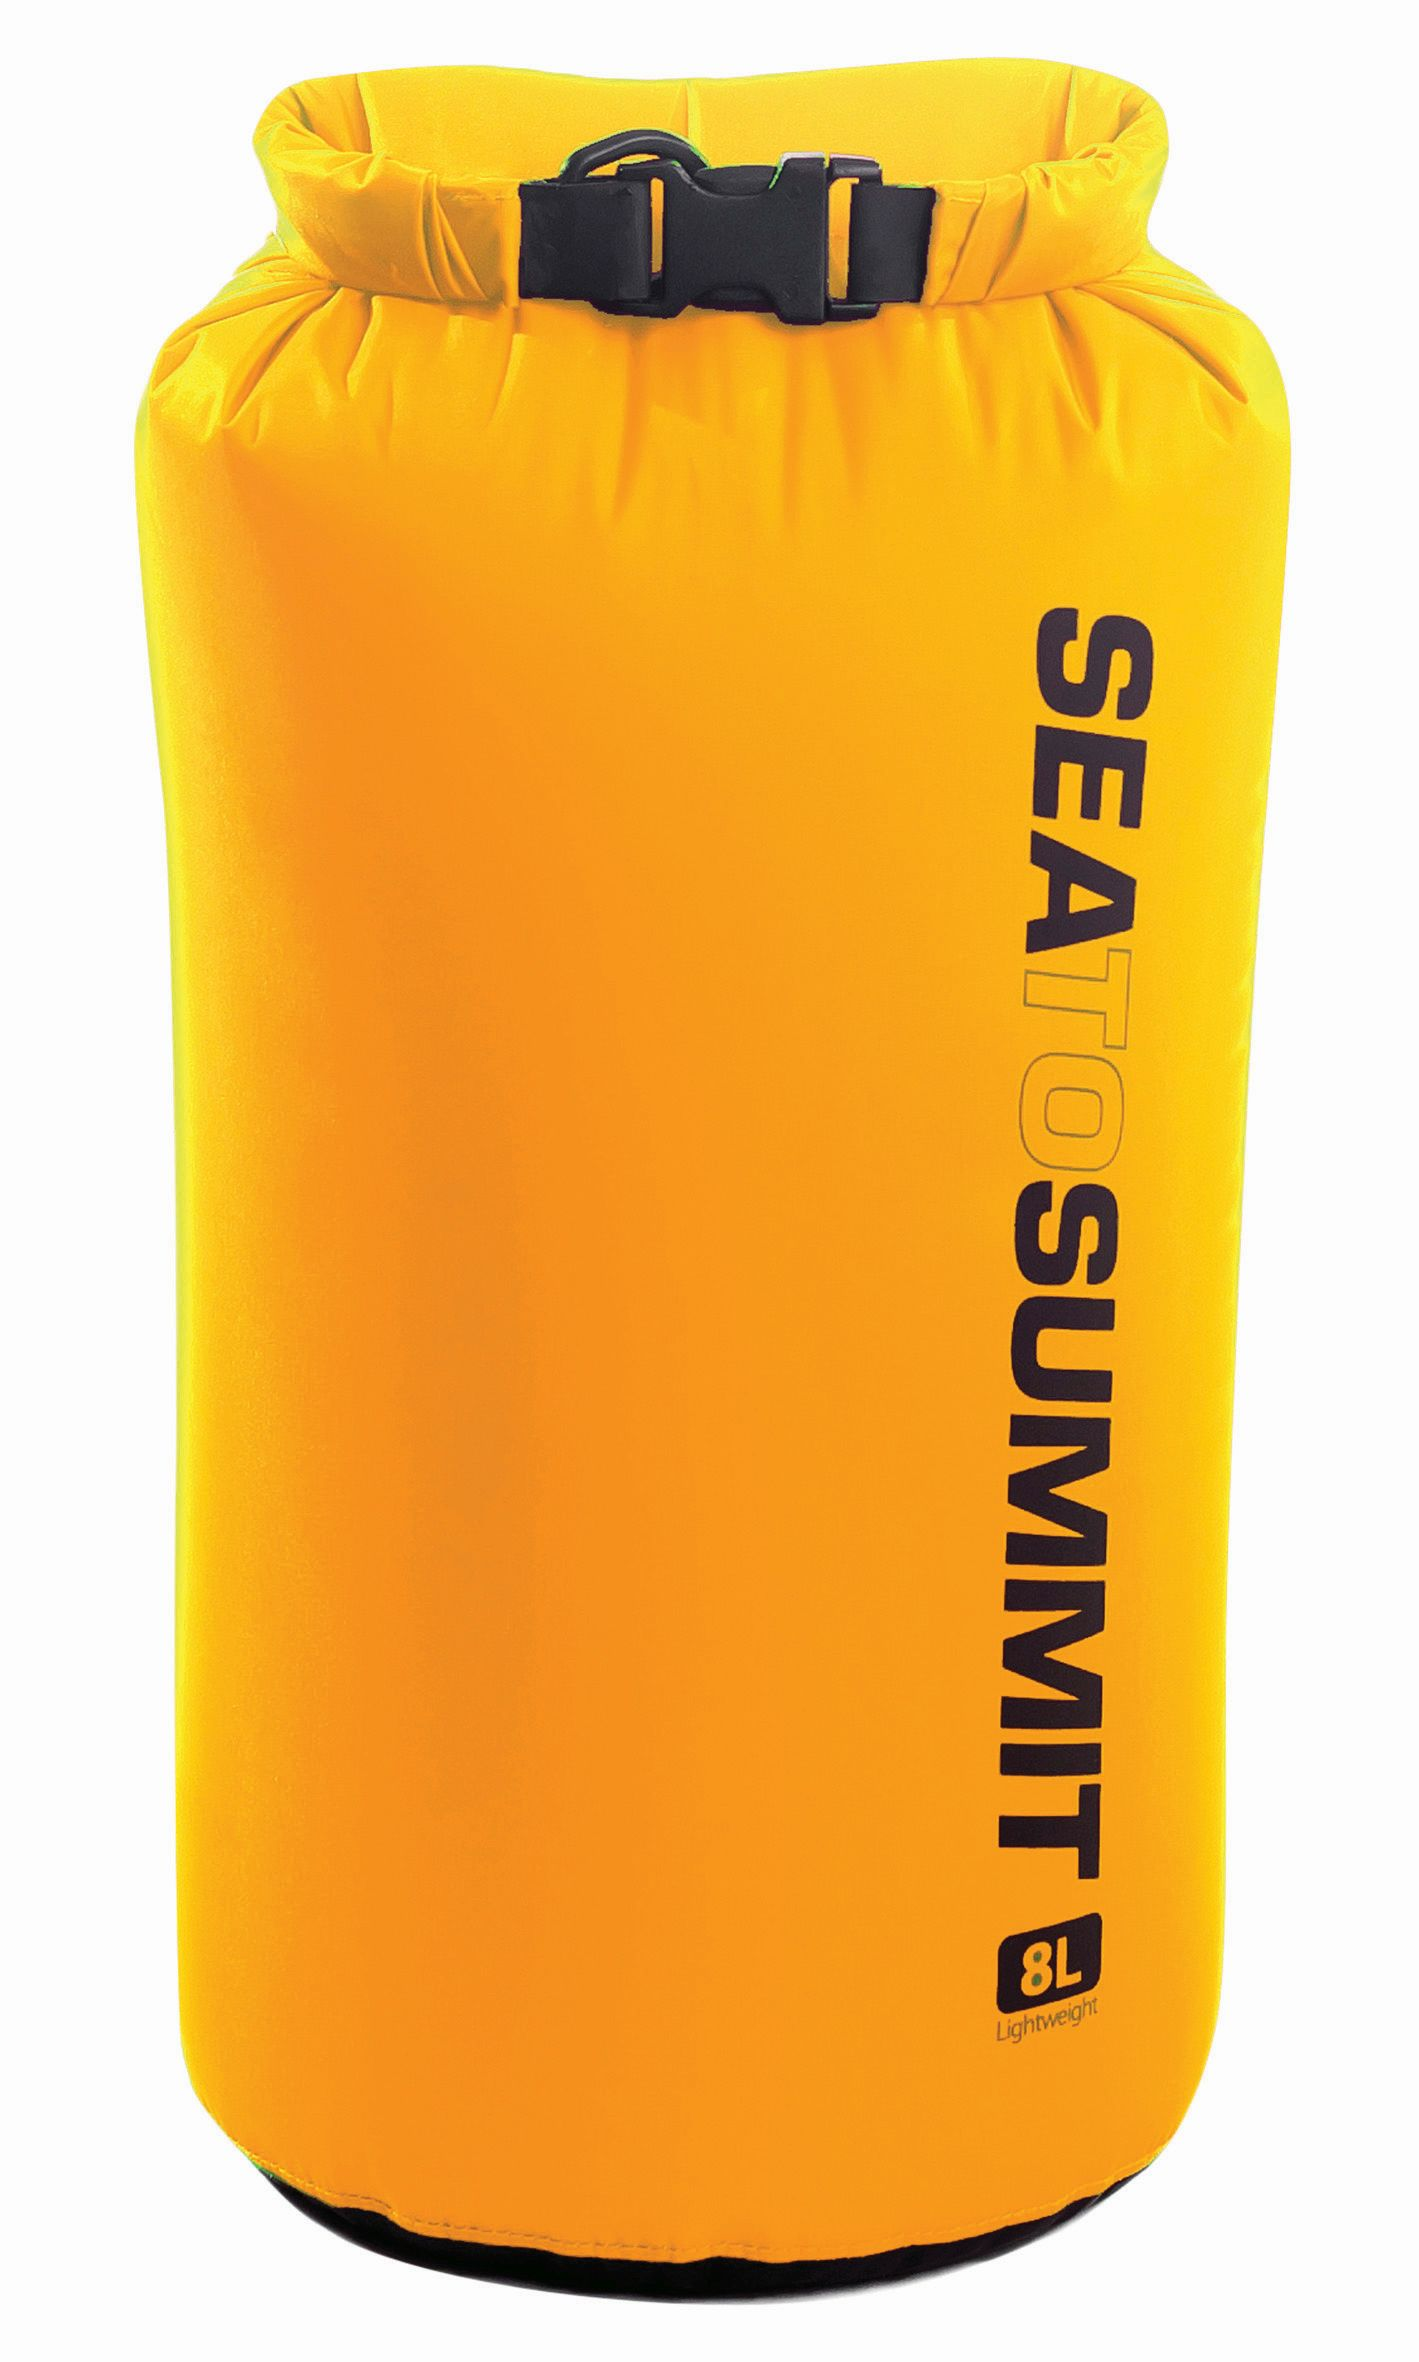 Sac impermeabil Lightweight Dry Sack Sea To Summit 8L - Galben